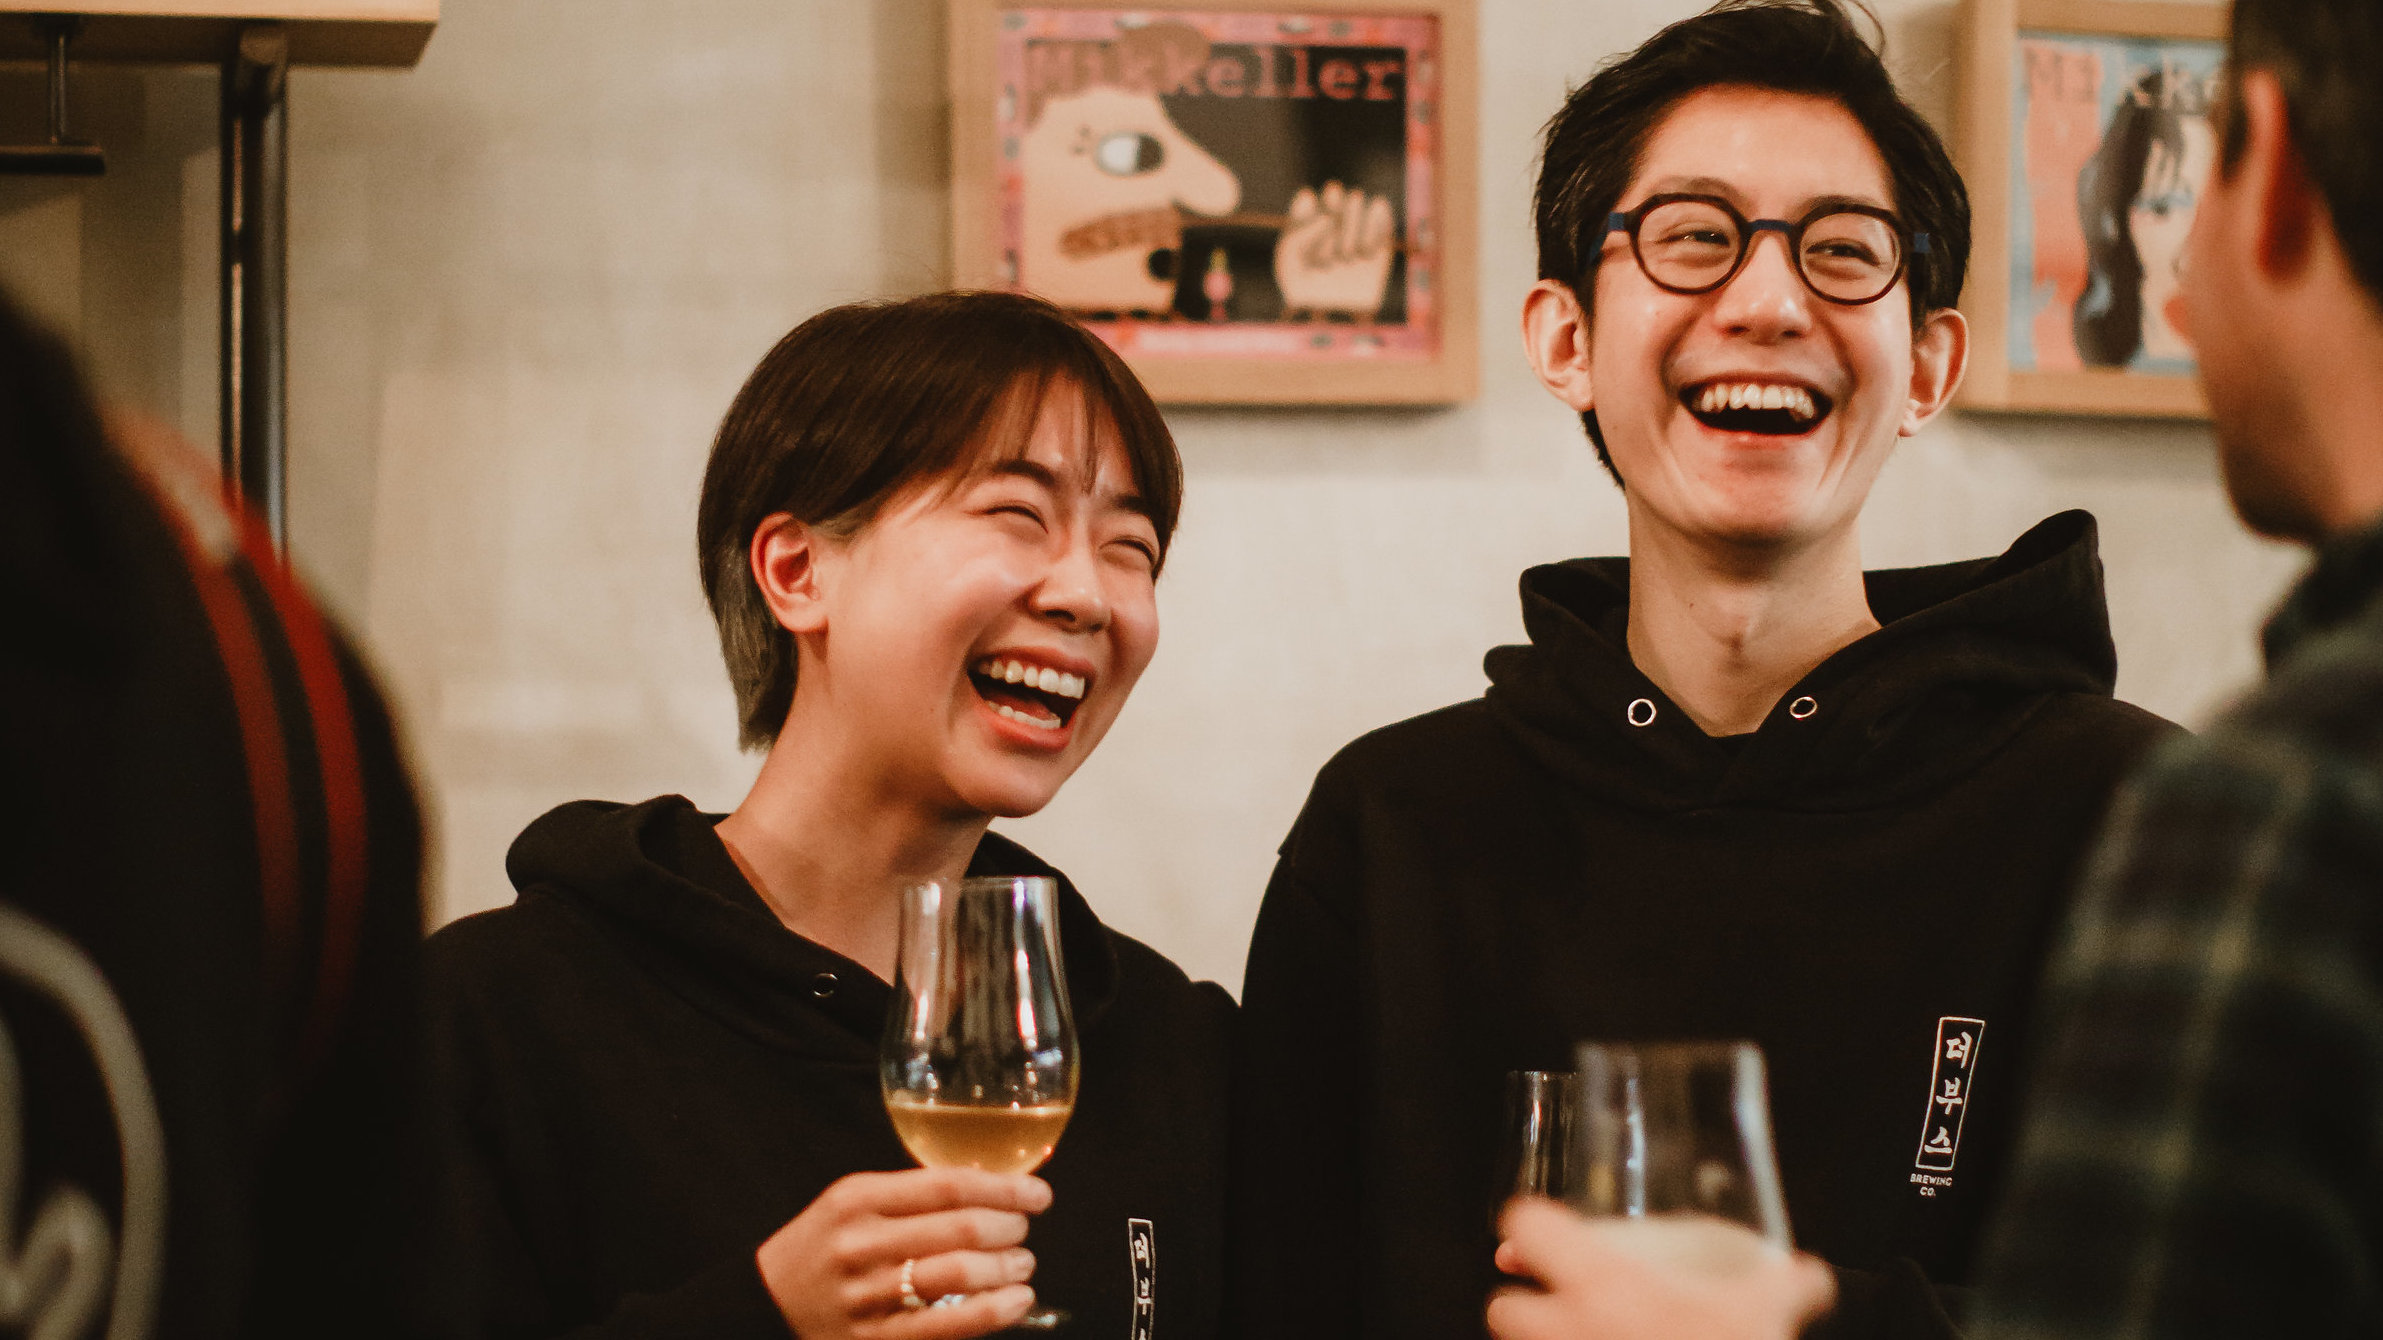 After starting a brewery in Seoul, Booth Brewery co-founders Heeyoon Kim (left) and Sunghoo Yang moved their operations to California to make Korean beer and ship it back.